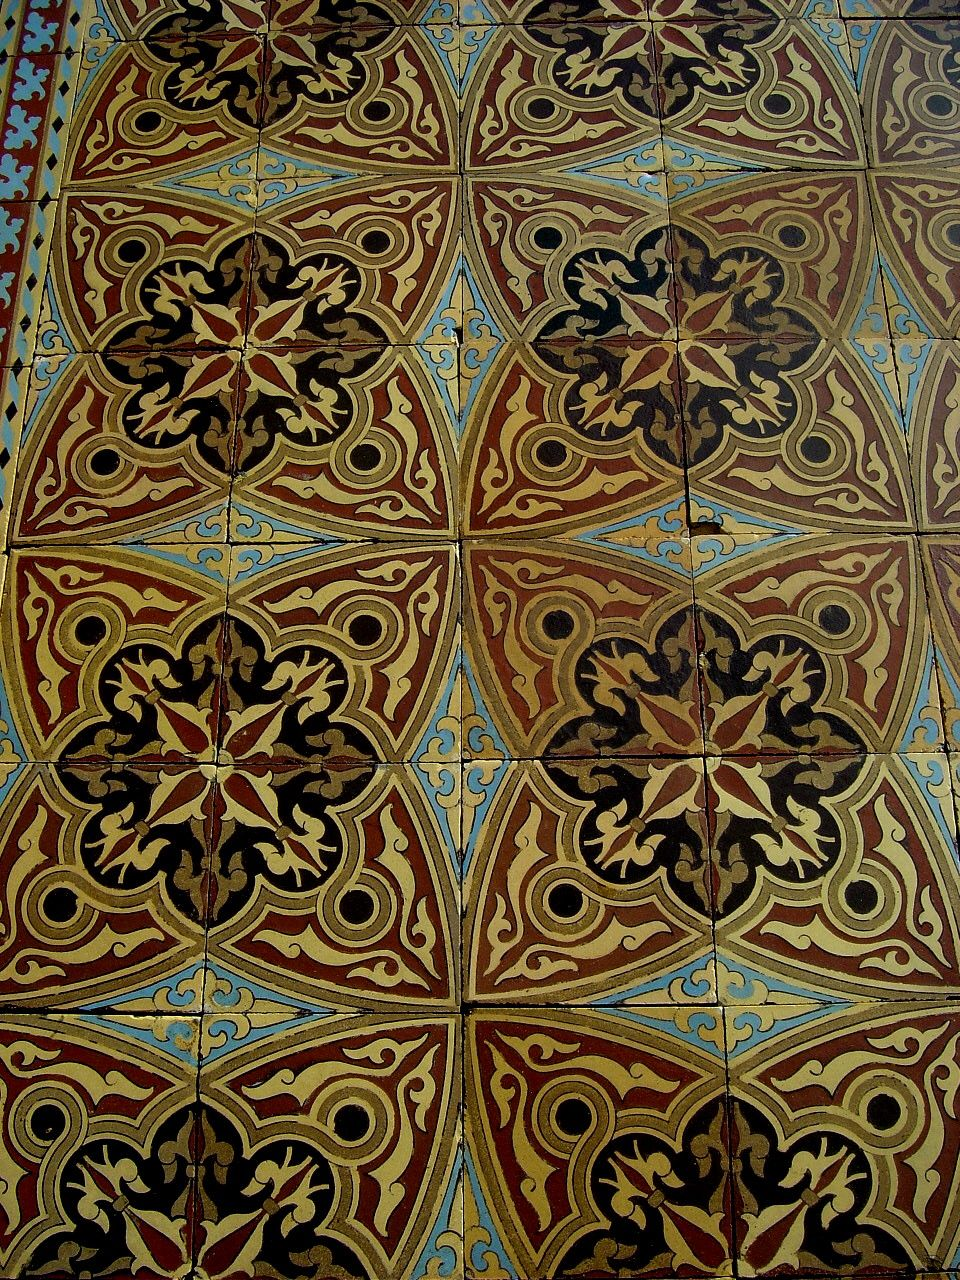 3m2 antique boch freres moorish themed tiles with borders c1860 antique boch freres moorish themed tiles with borders the antique floor company doublecrazyfo Image collections